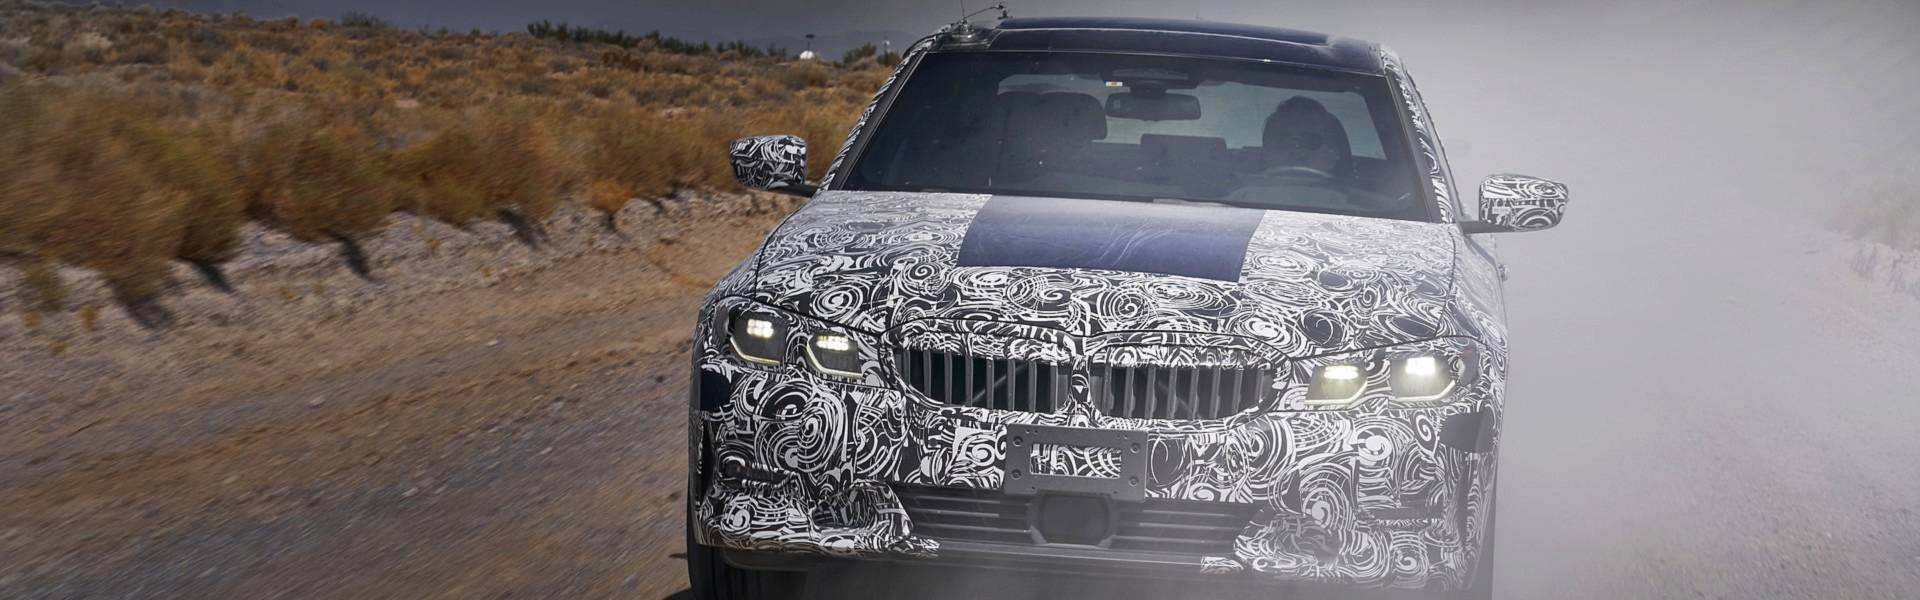 2019-bmw-3-series-teaser (10).jpg